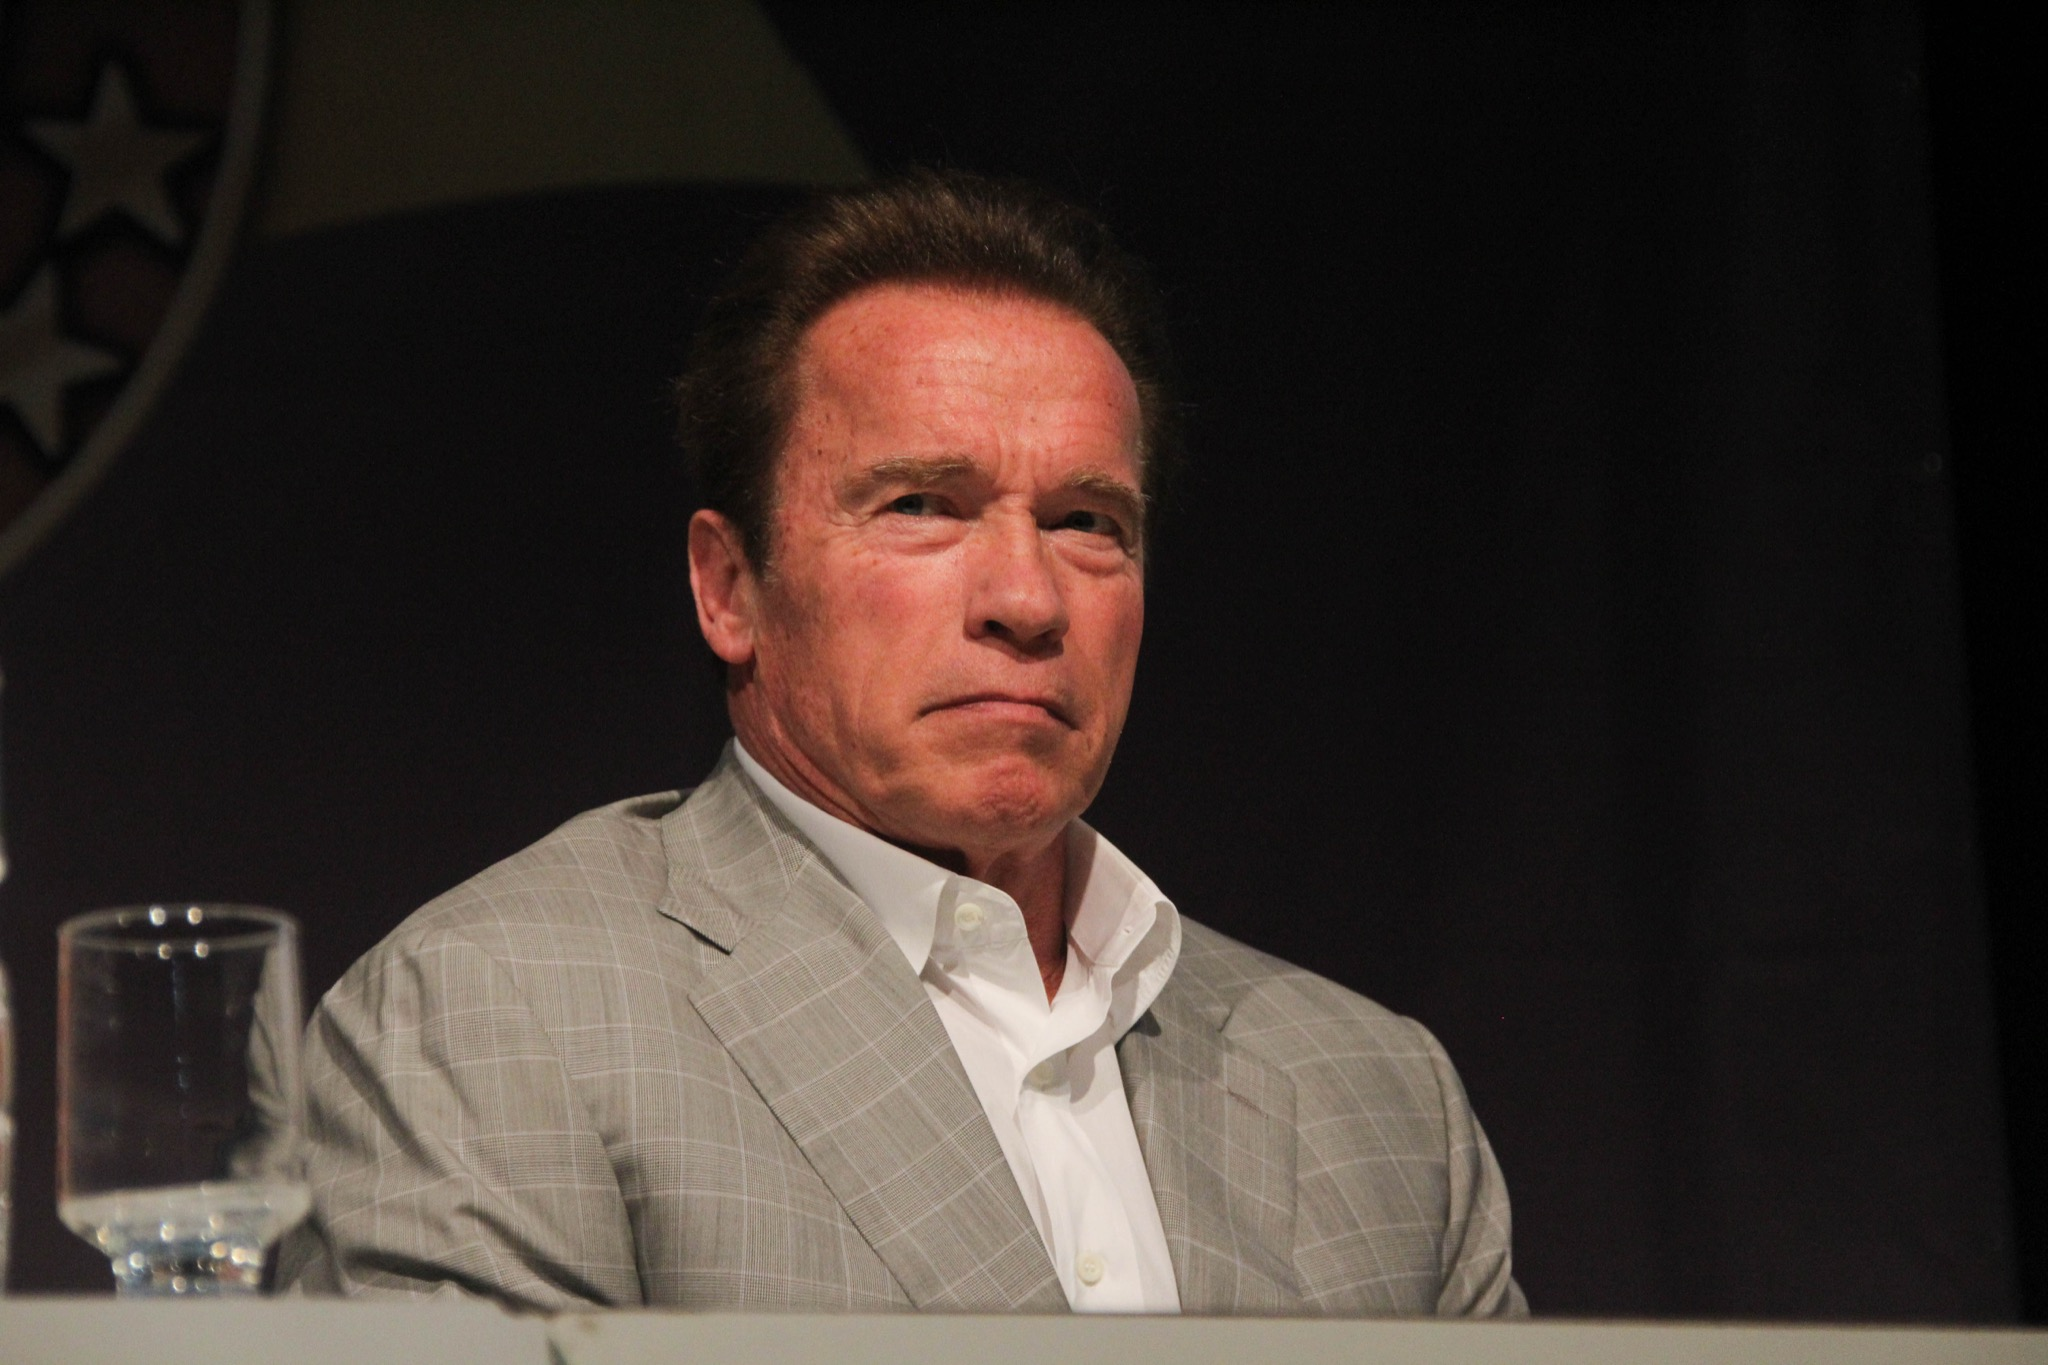 It's absolutely Arnold, at a conference just being himself